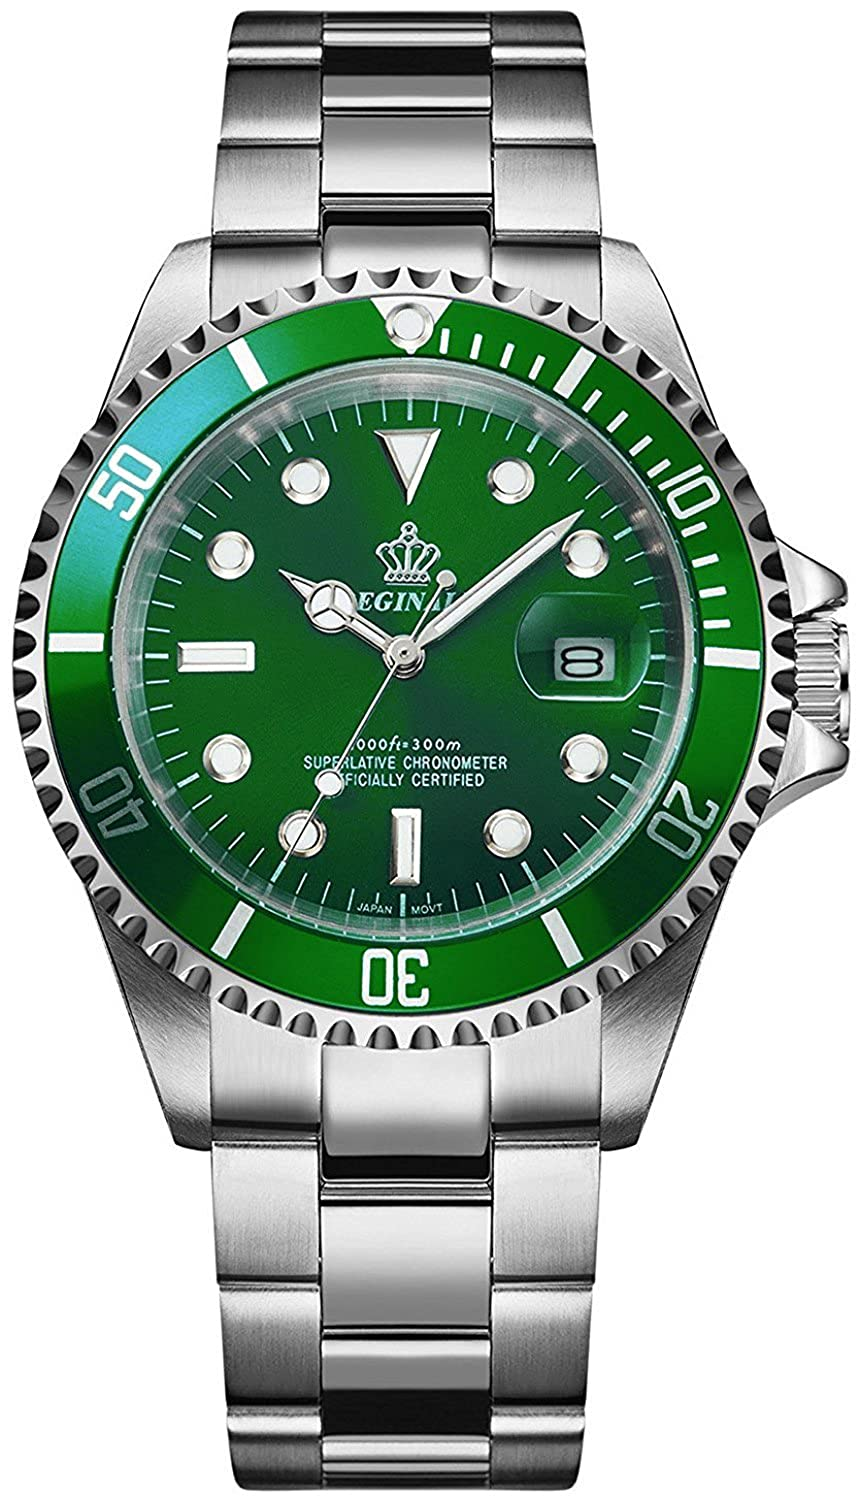 Amazon.com: Gosasa 2016 New Fashion Quartz Watch Men Stainless Steel Dress Watch with Green Dial Water Proof: Watches